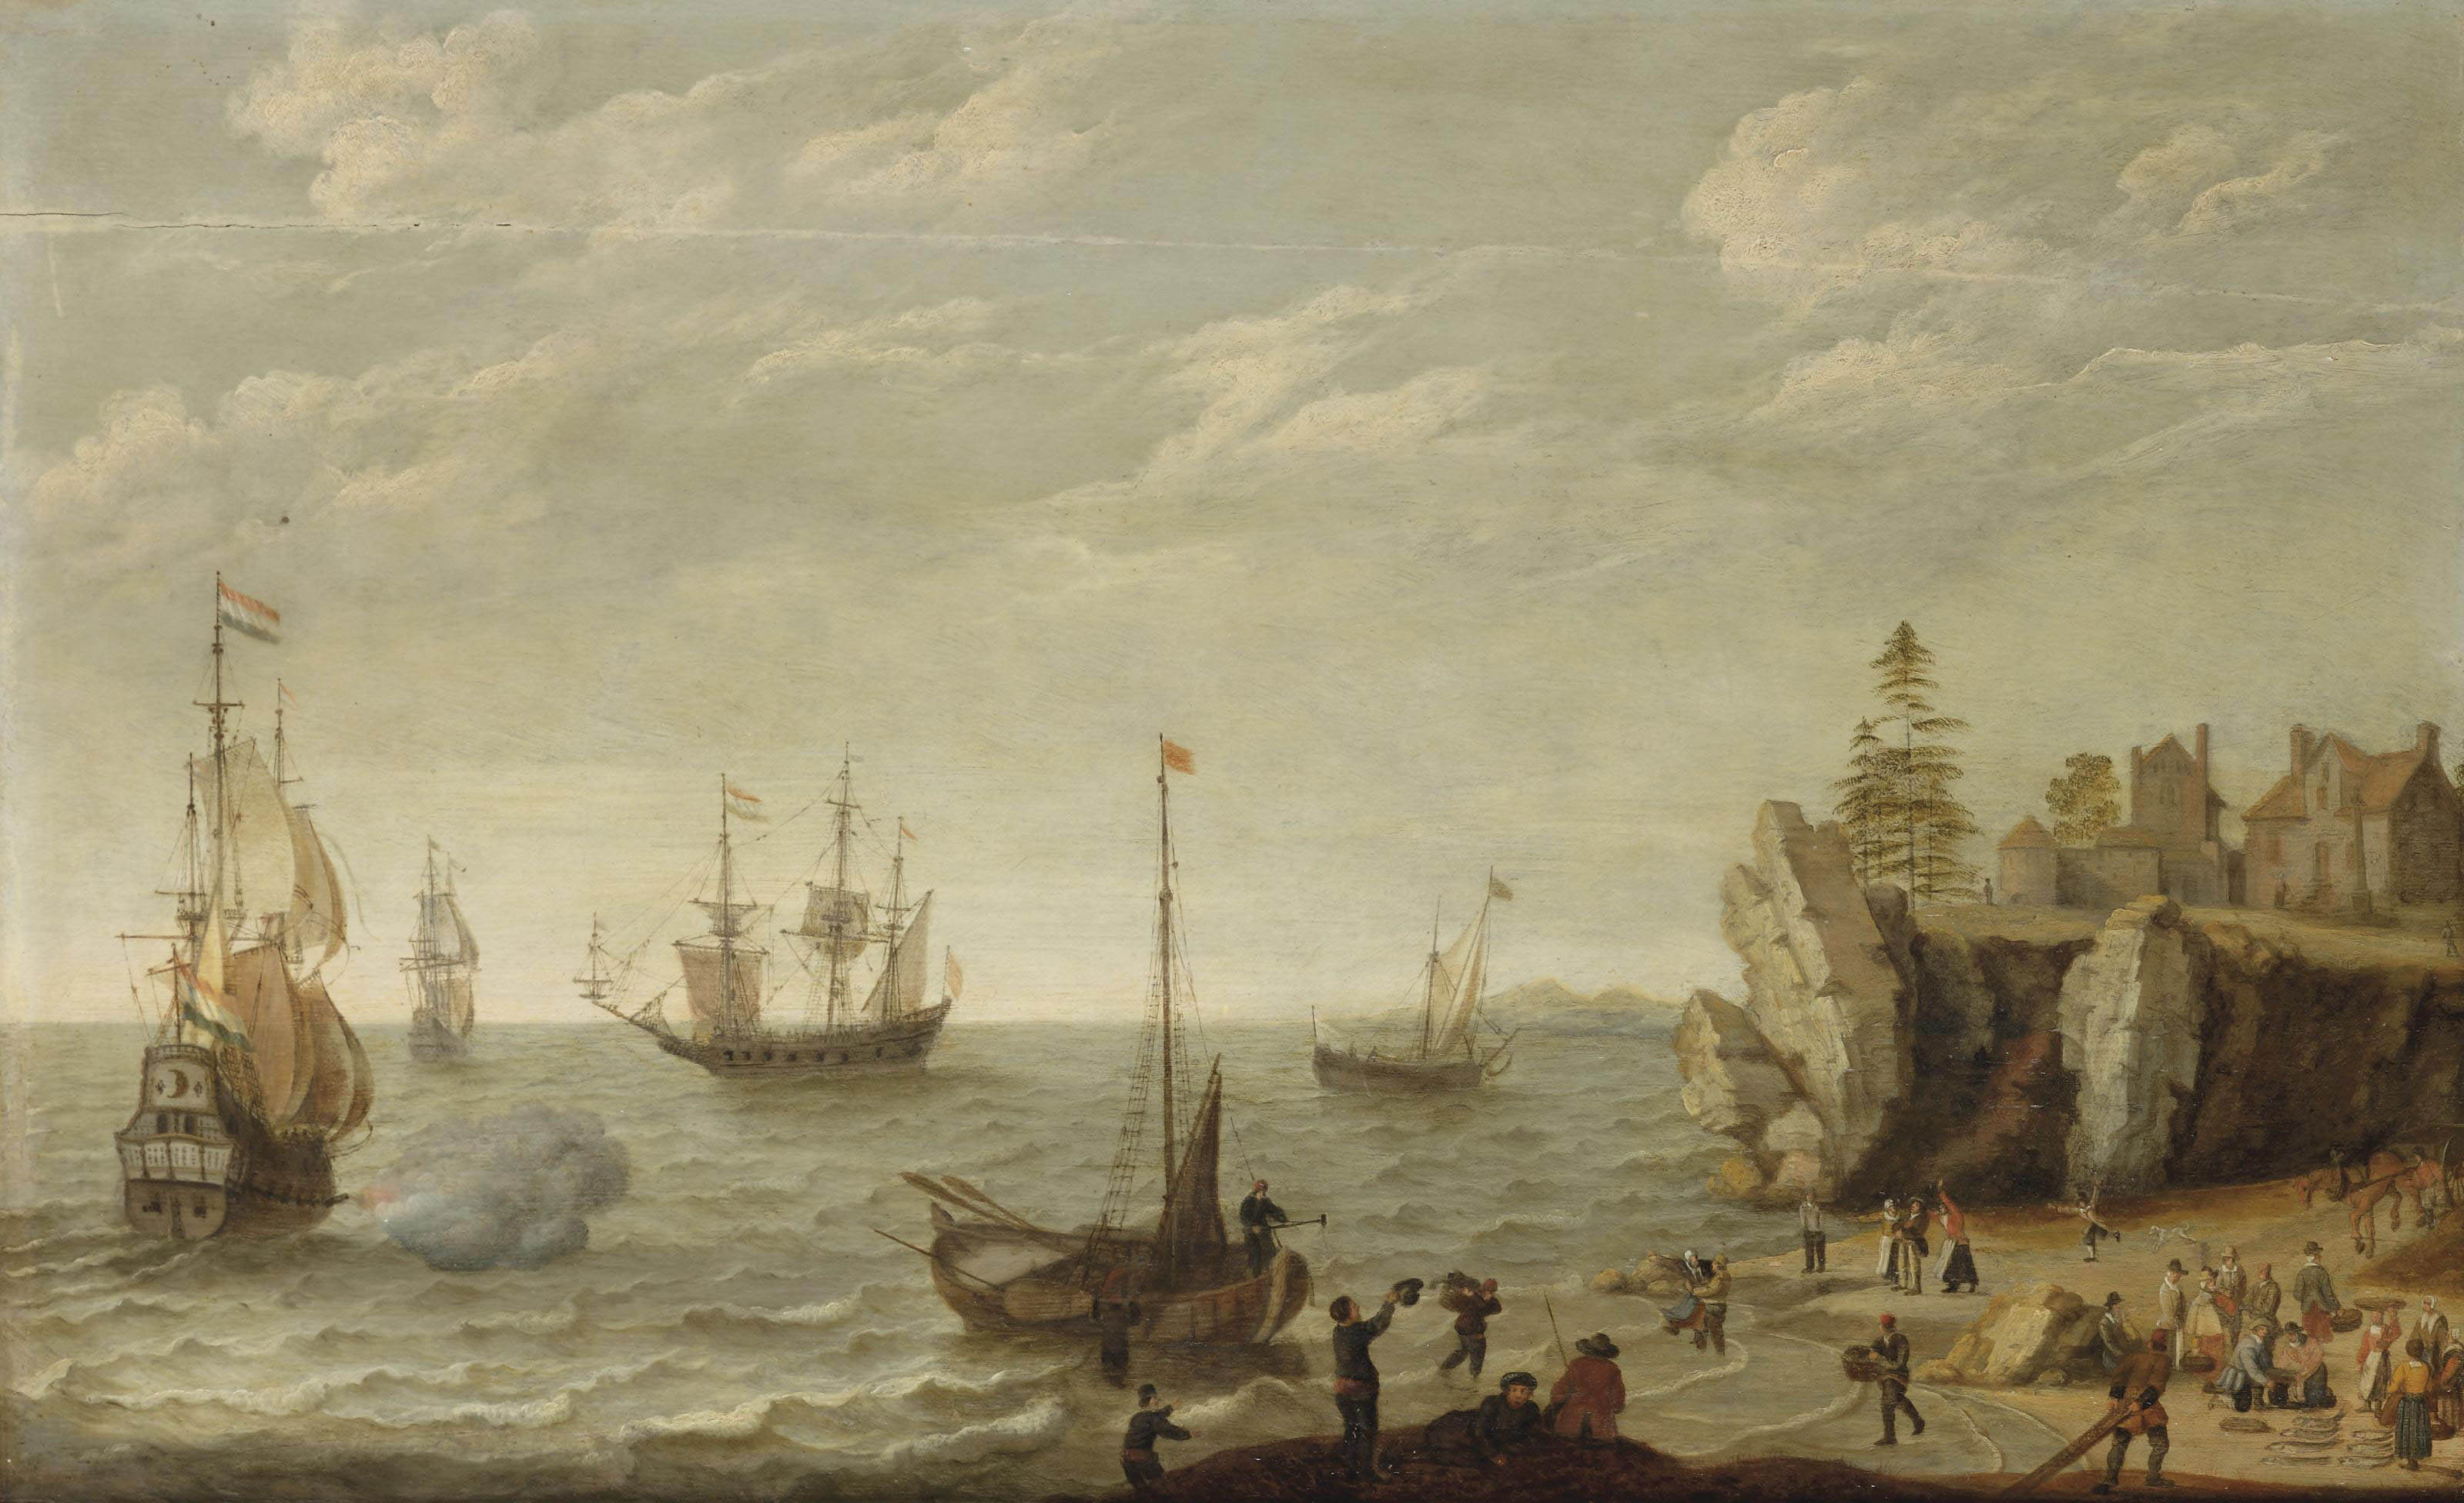 Dutch merchants at anchor in choppy waters off a rocky coast in a bay with fishermen unloading their catch